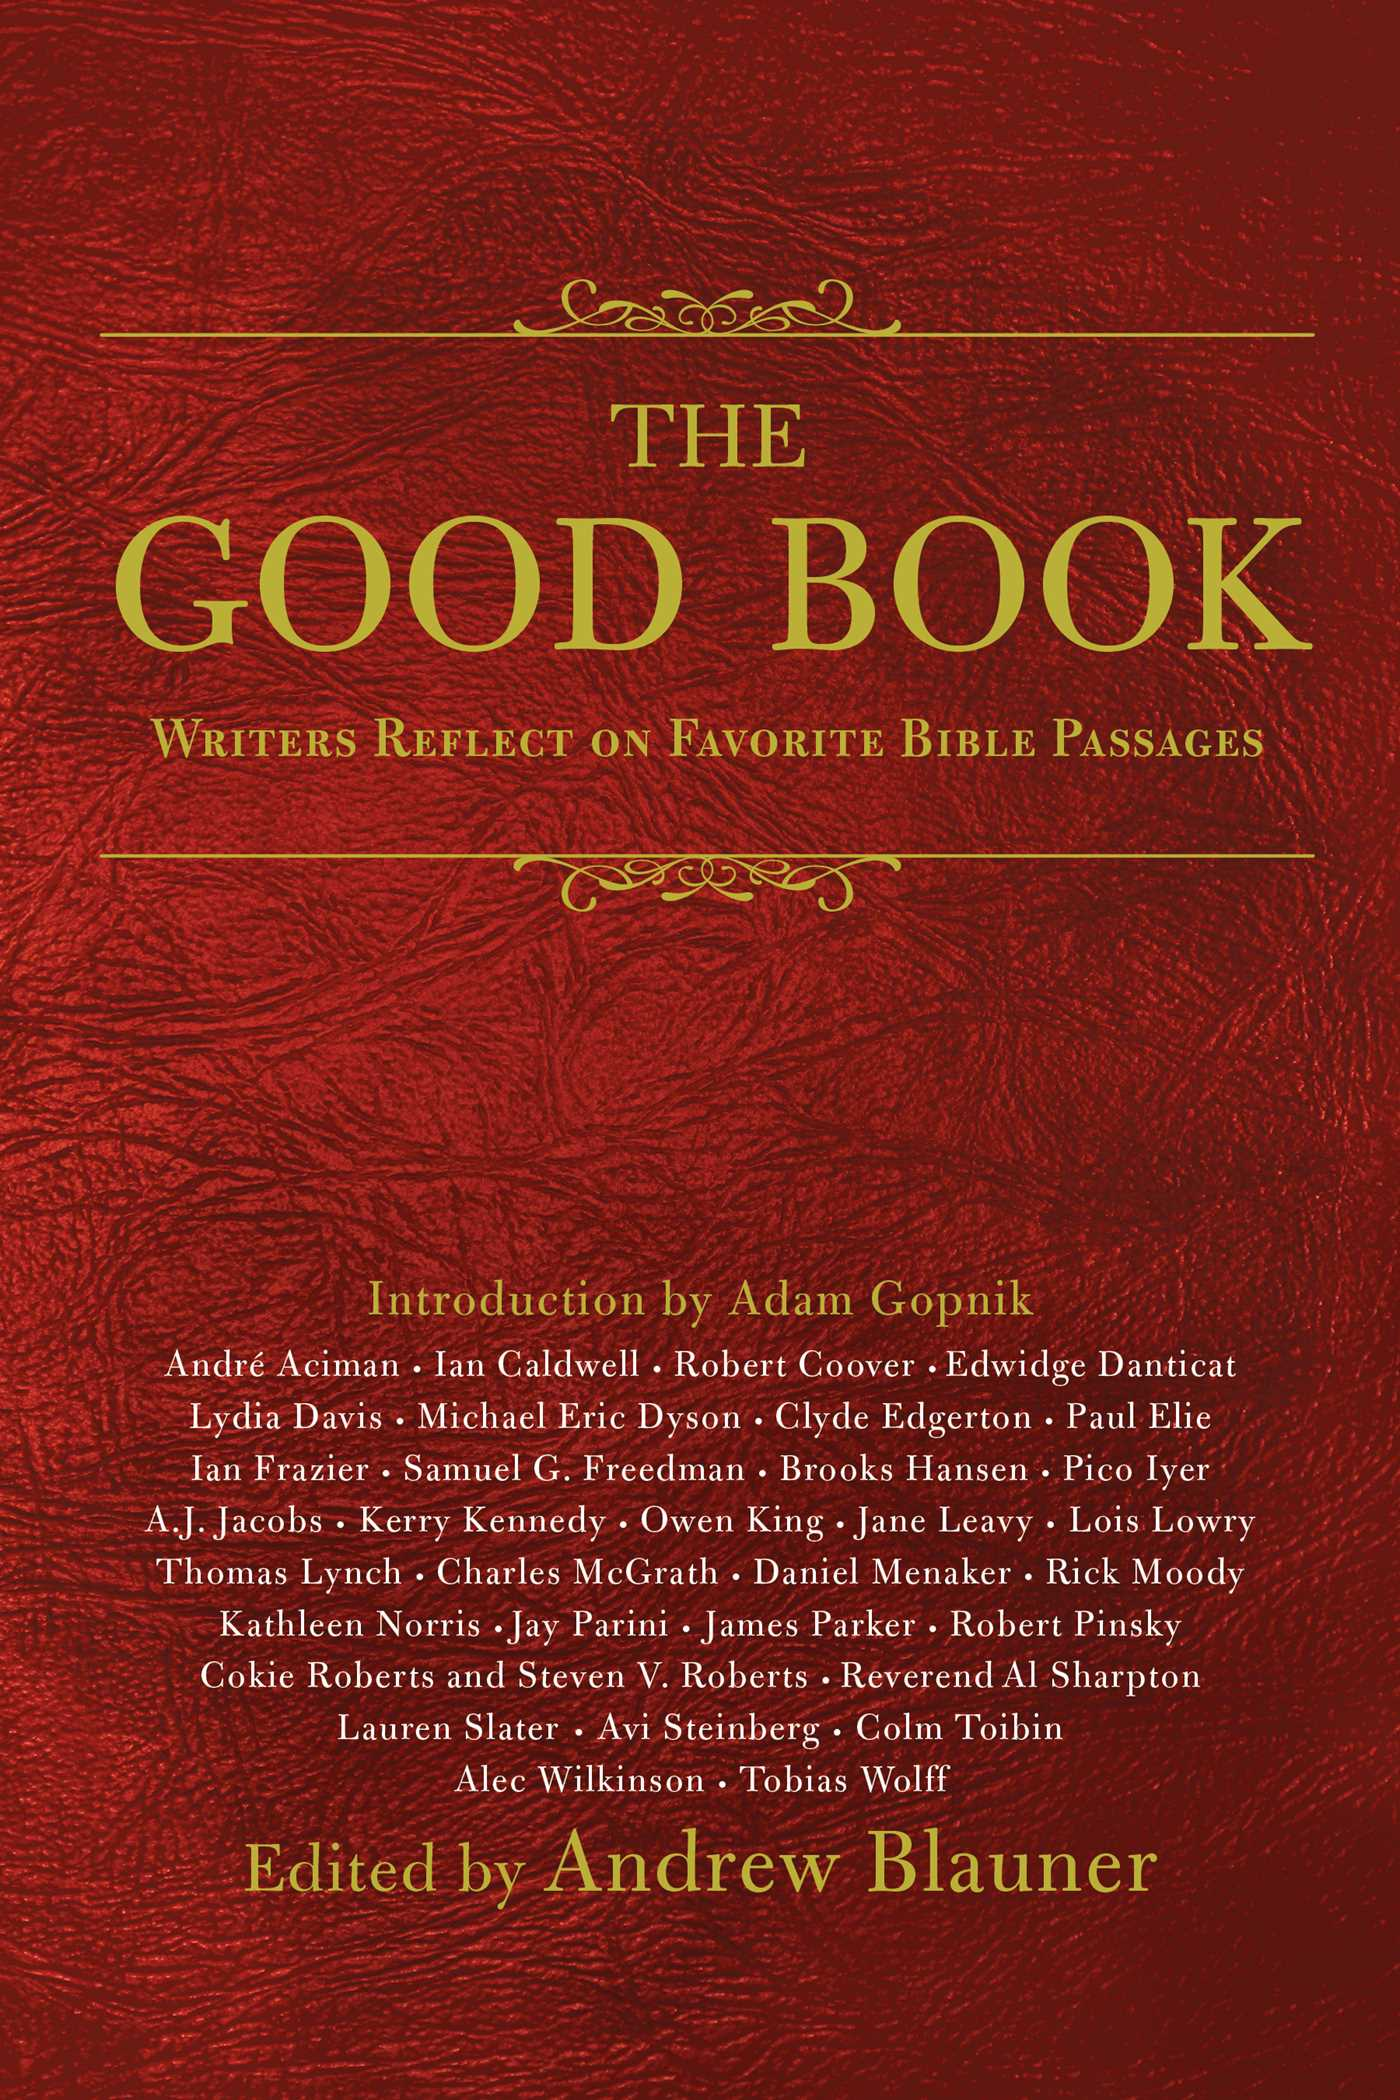 review the good book writers reflect on favorite bible passages  assemble a group of novelists poets professors and journalists and ask them to write an essay on a book of the bible that has special meaning for them and